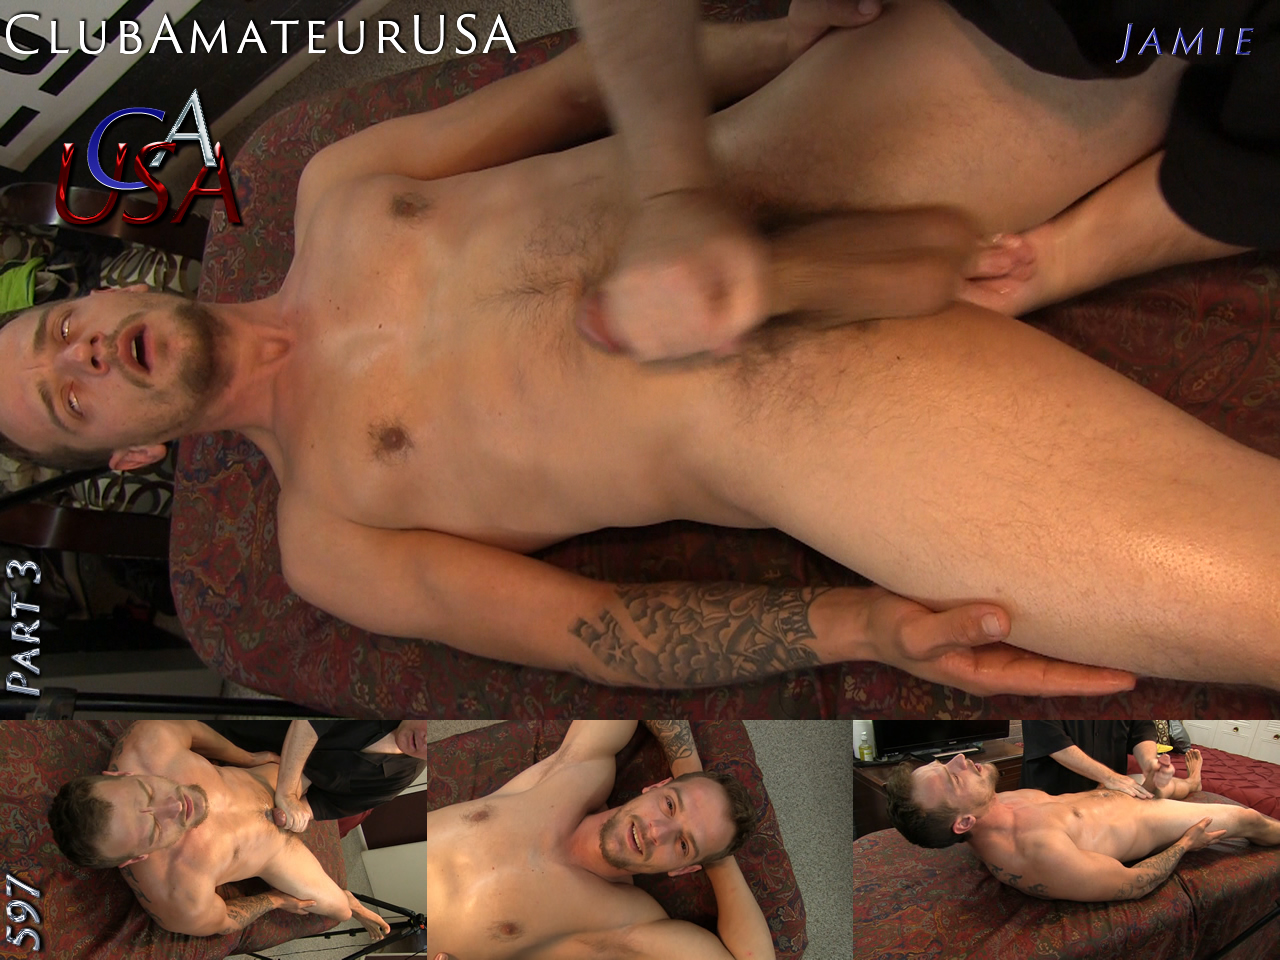 Download or Stream CAUSA 597 Jamie - Part 3 - Click Here Now